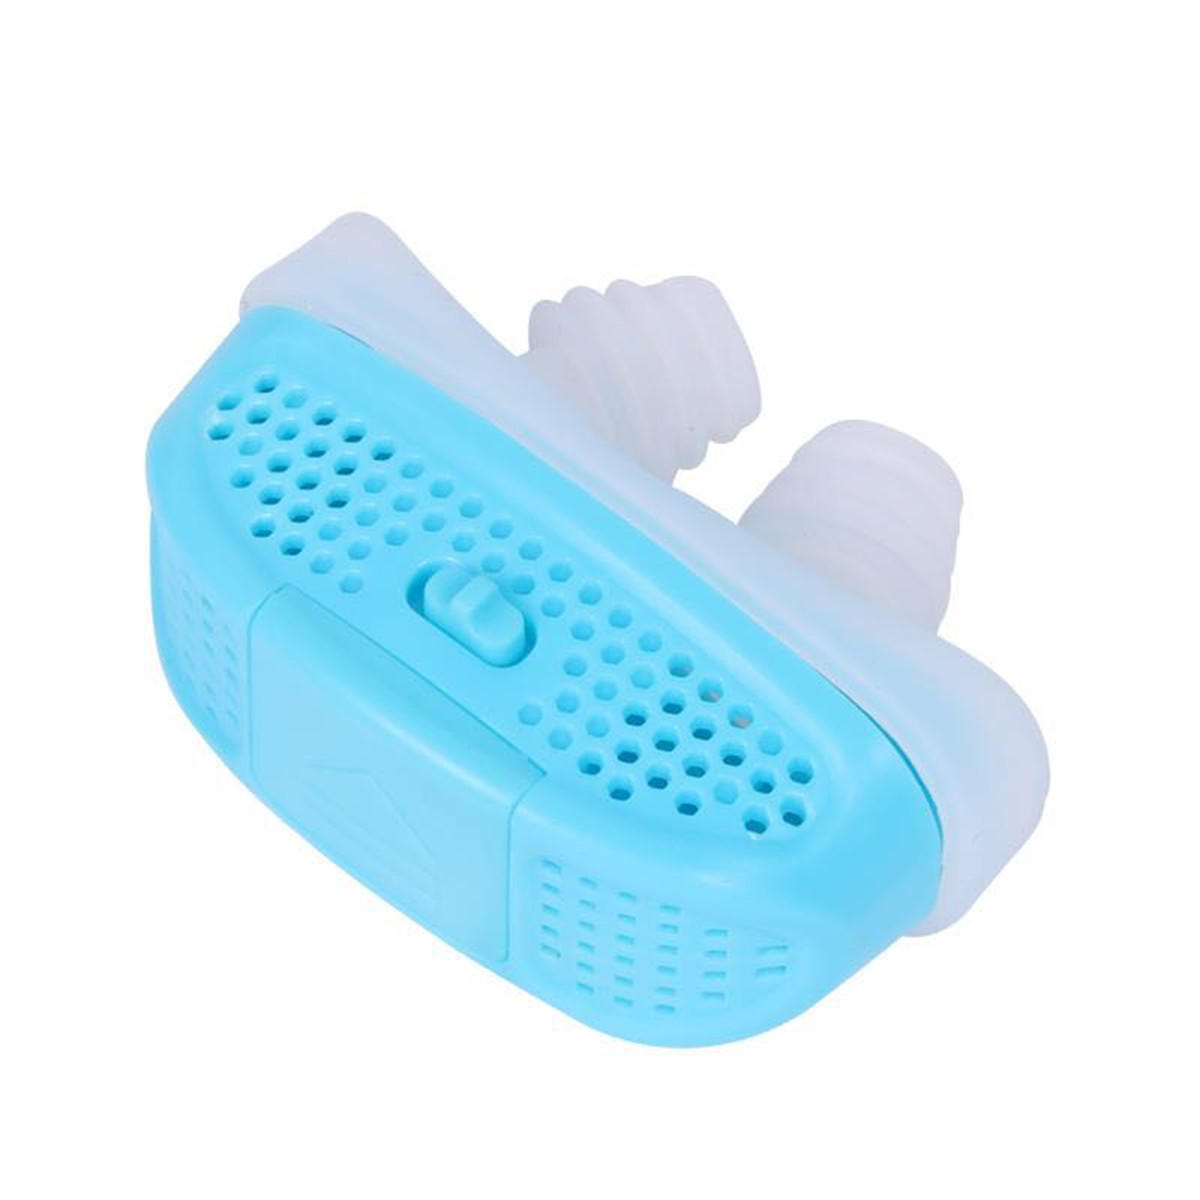 Mini CPAP Anti Snoring Devices Air Purifier Sleep Aid Snore Stopper Nose Machine